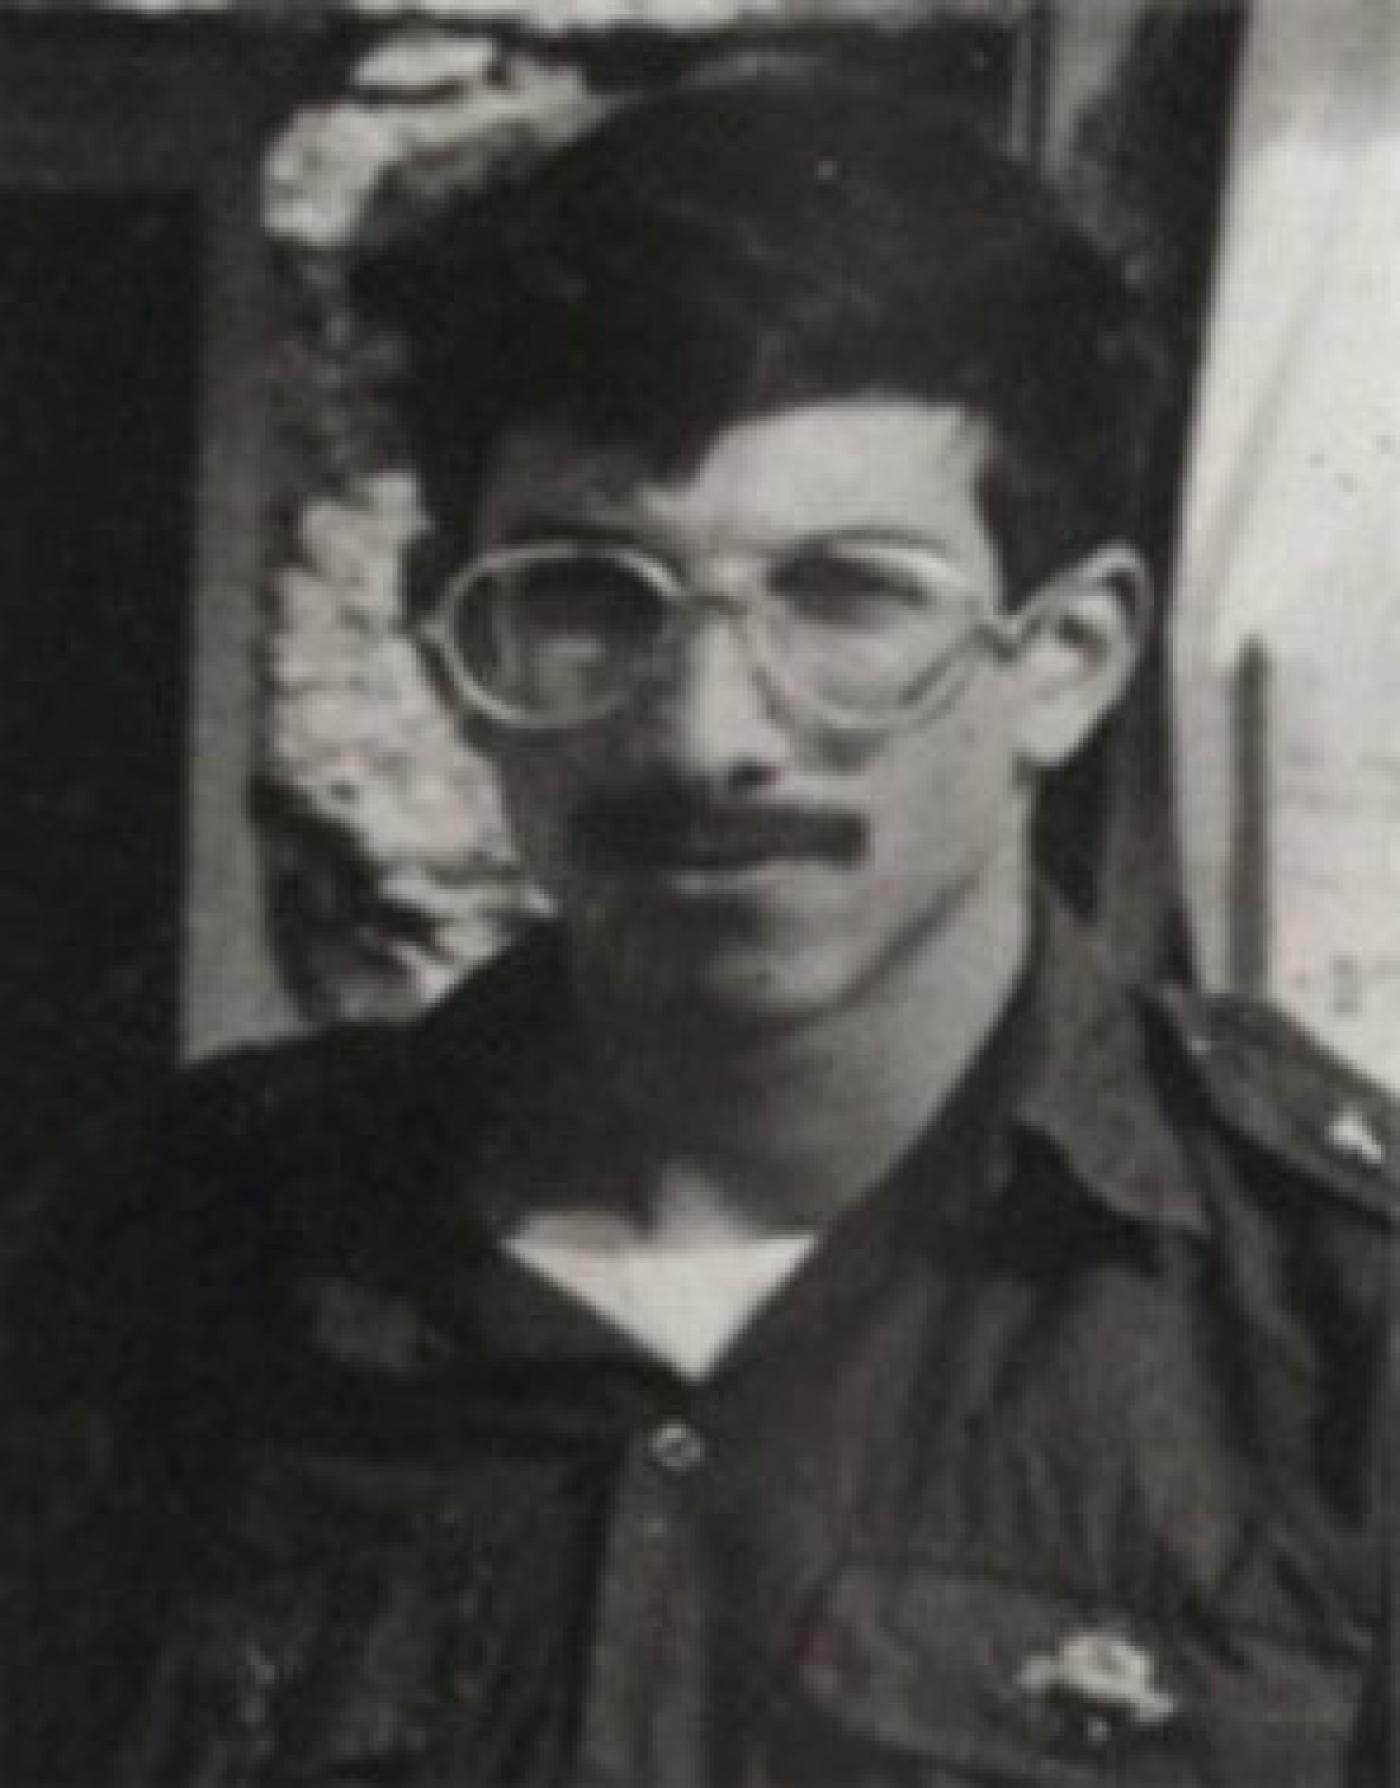 After 37 Years, Body of Missing Soldier Zachary Baumel Returned to Israel